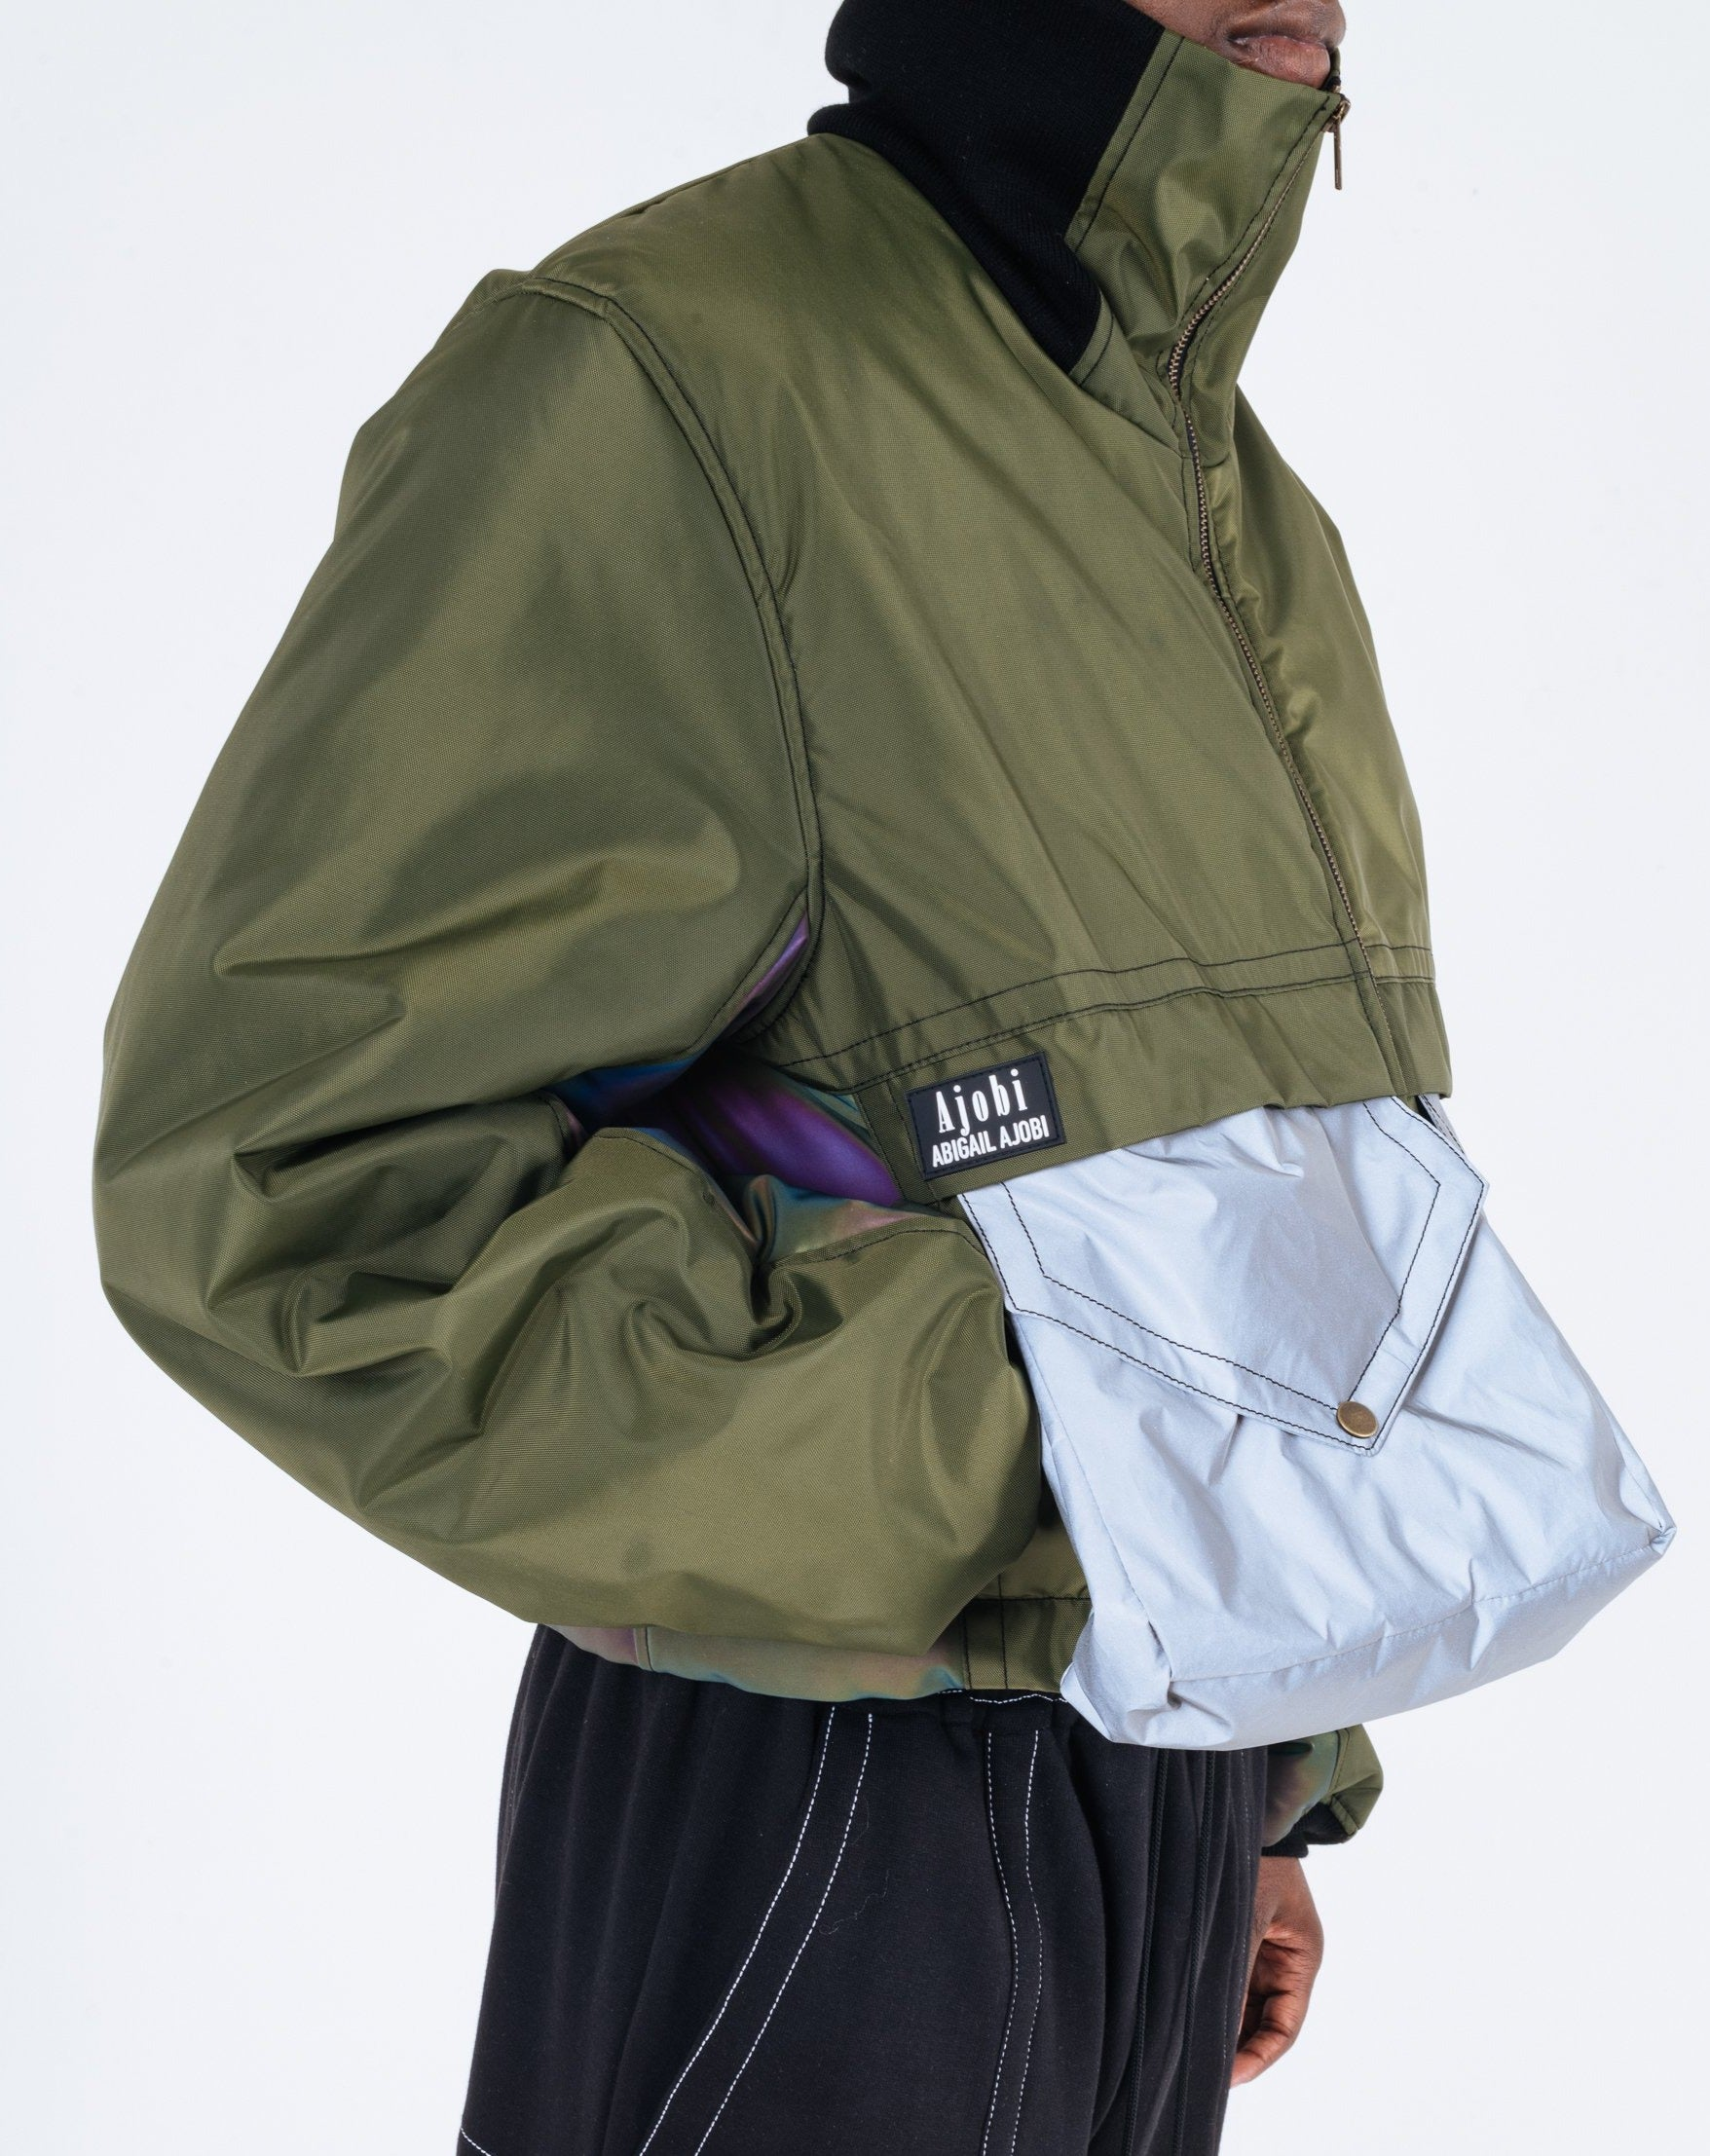 THE MANDEM CROPPED COAT